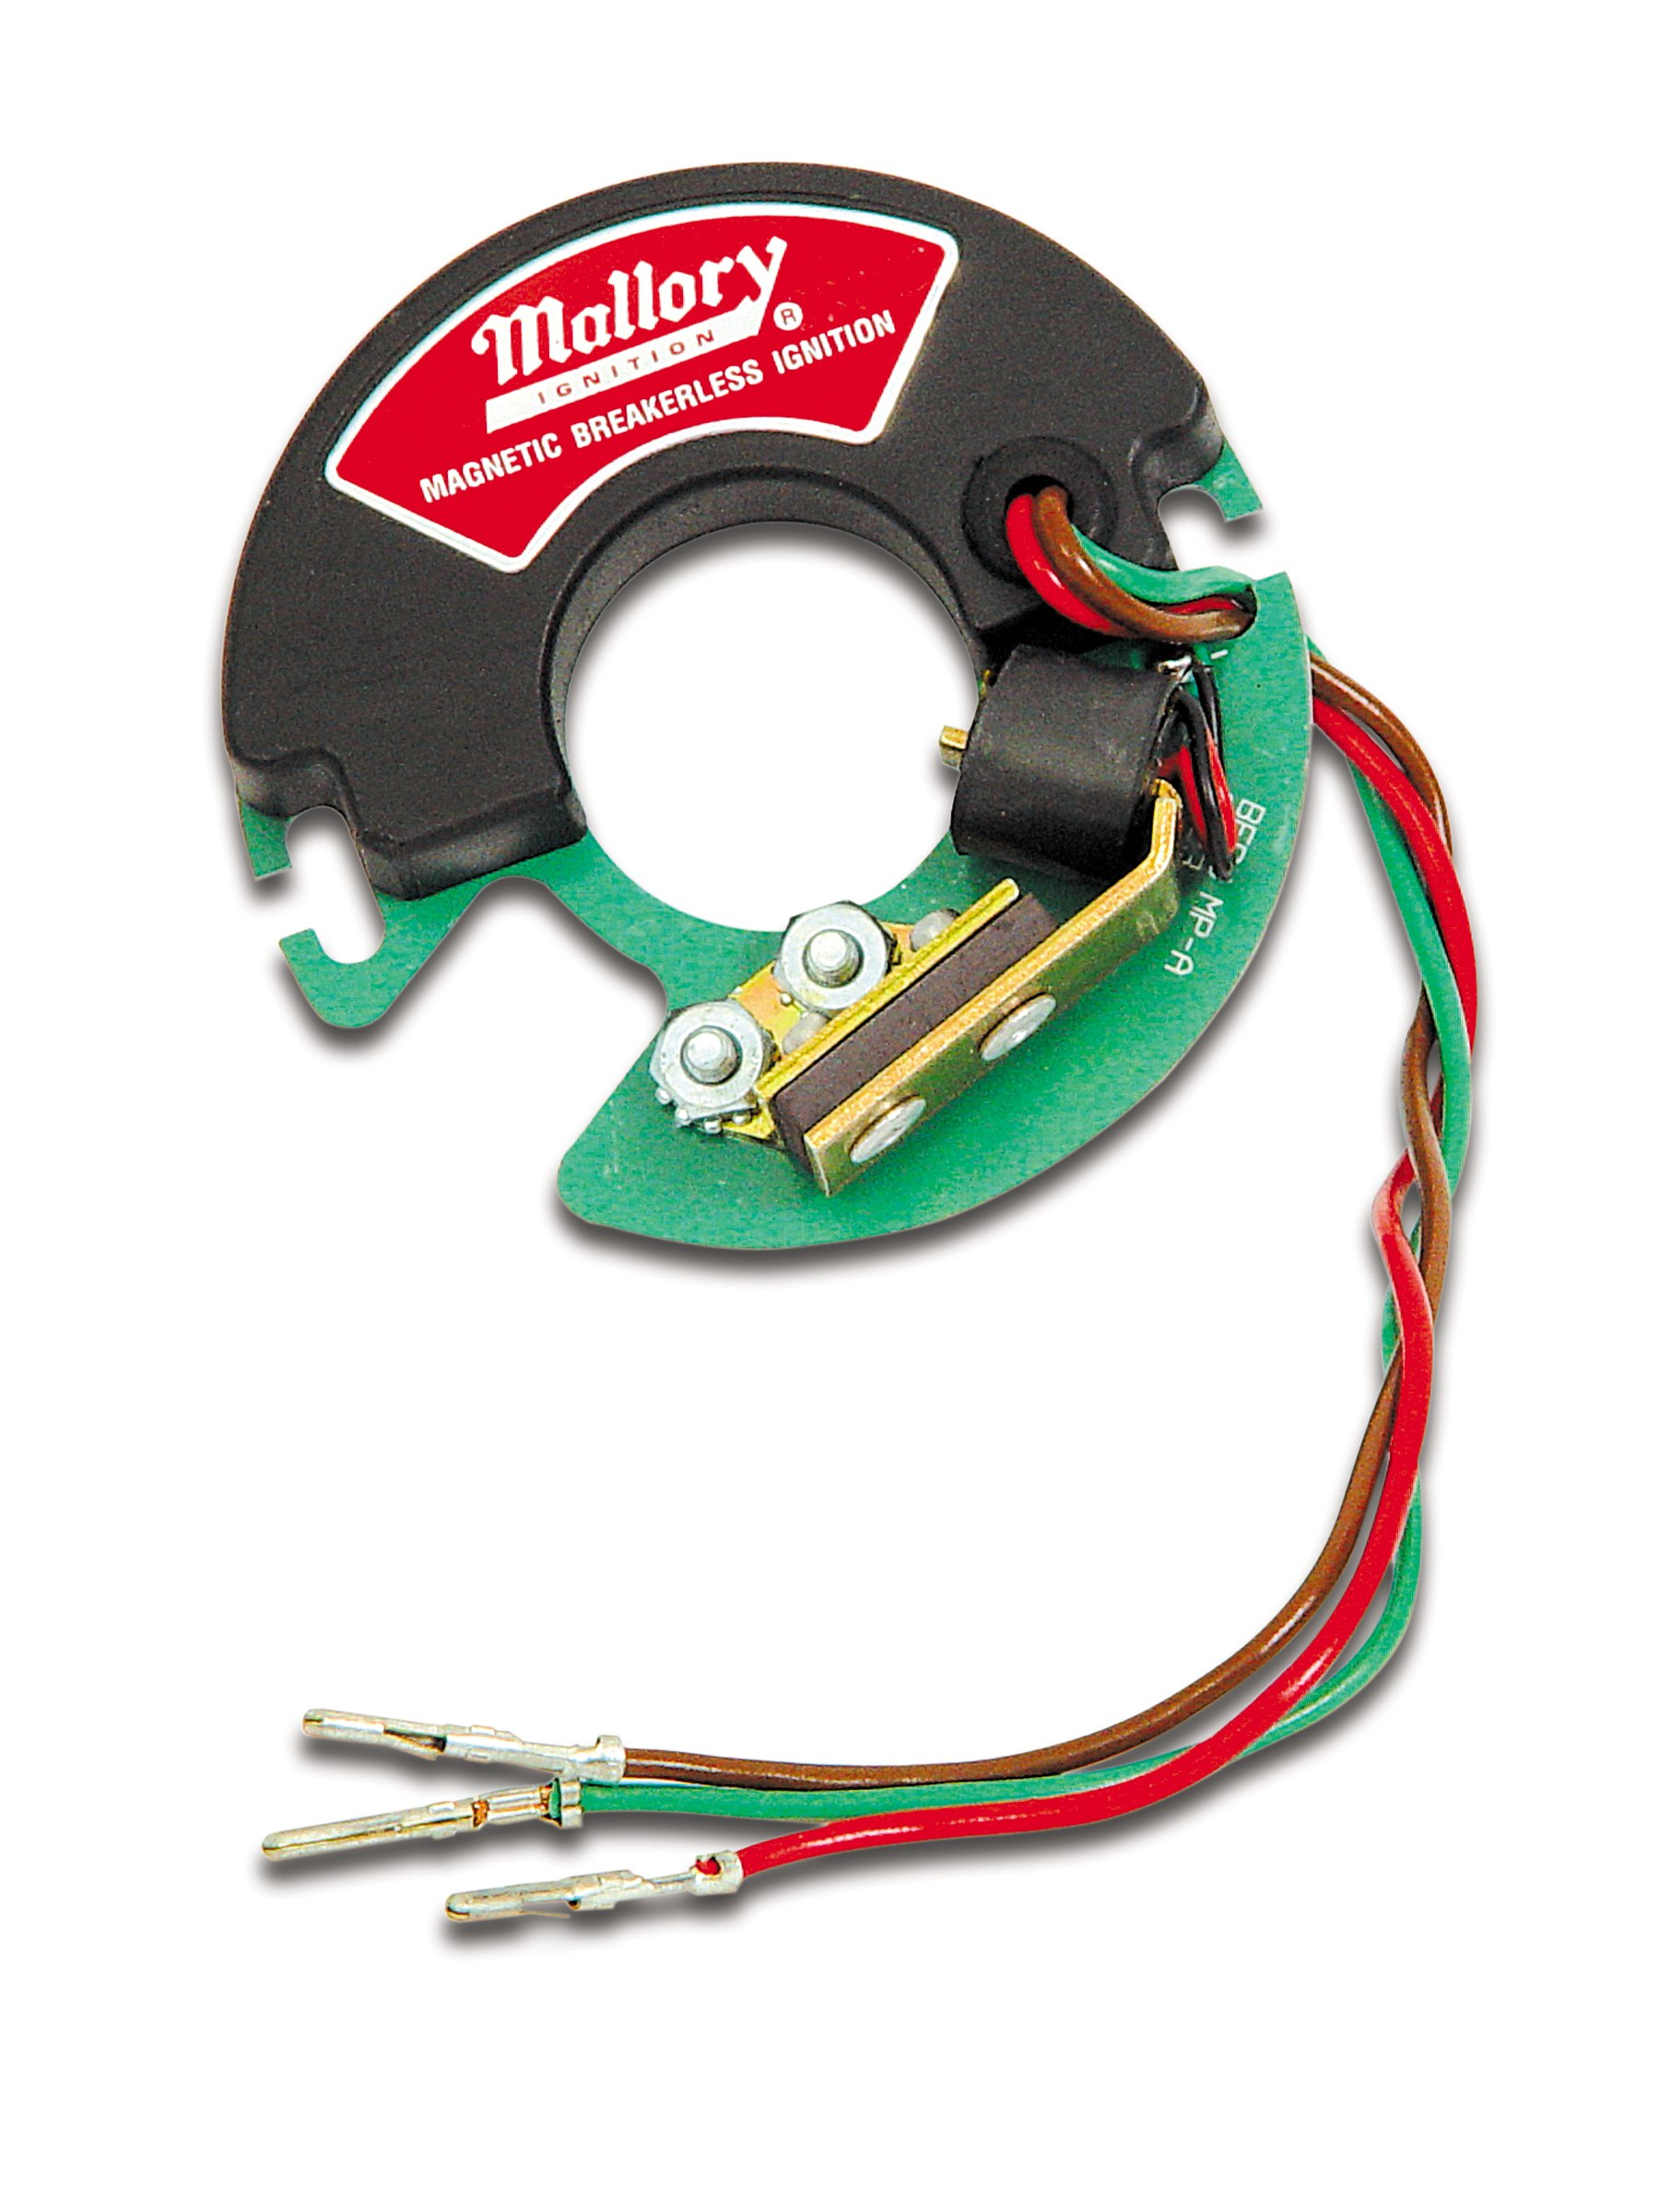 mallory ignition comp 9000 wiring diagram solidfonts mallory breakerless distributor wiring solidfonts